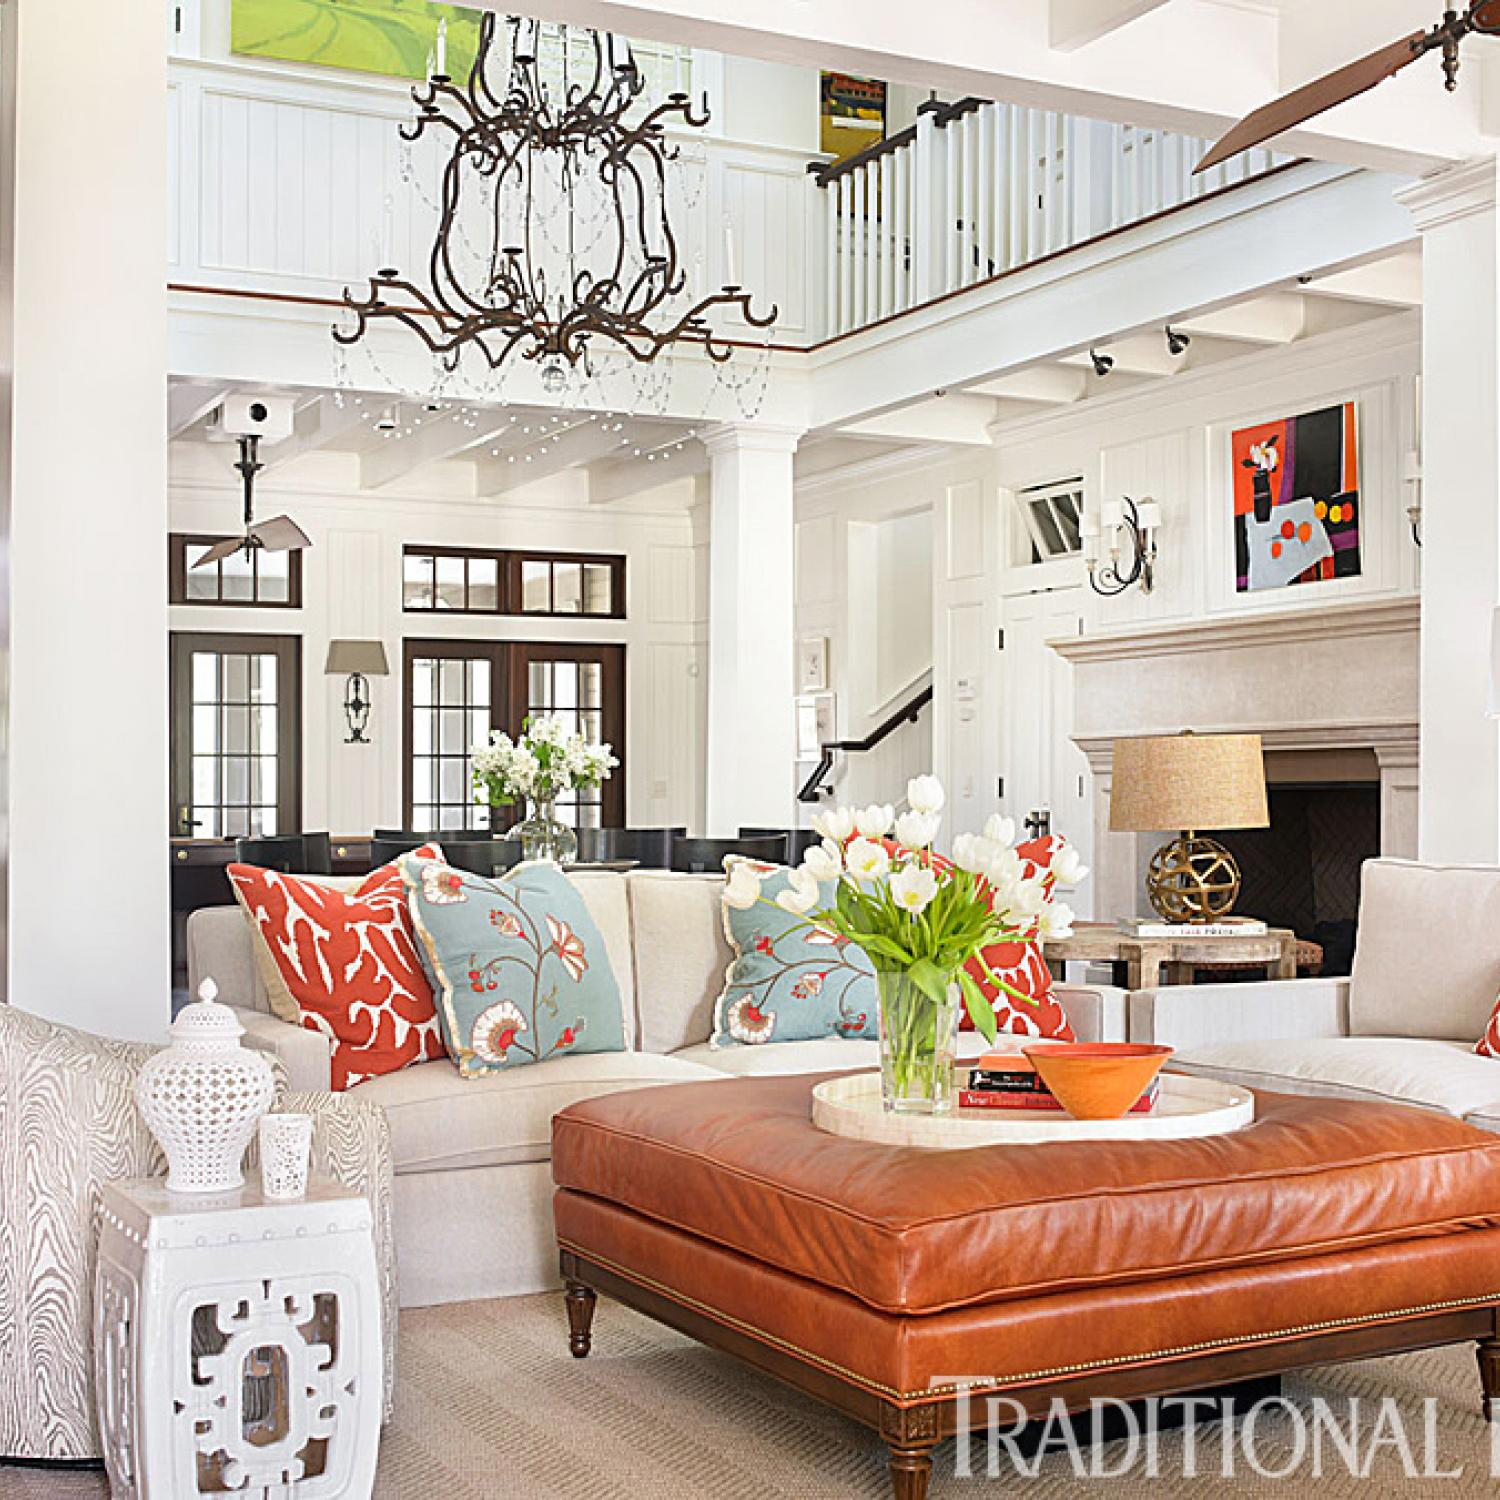 Inside Home Design: Traditional Interior Design